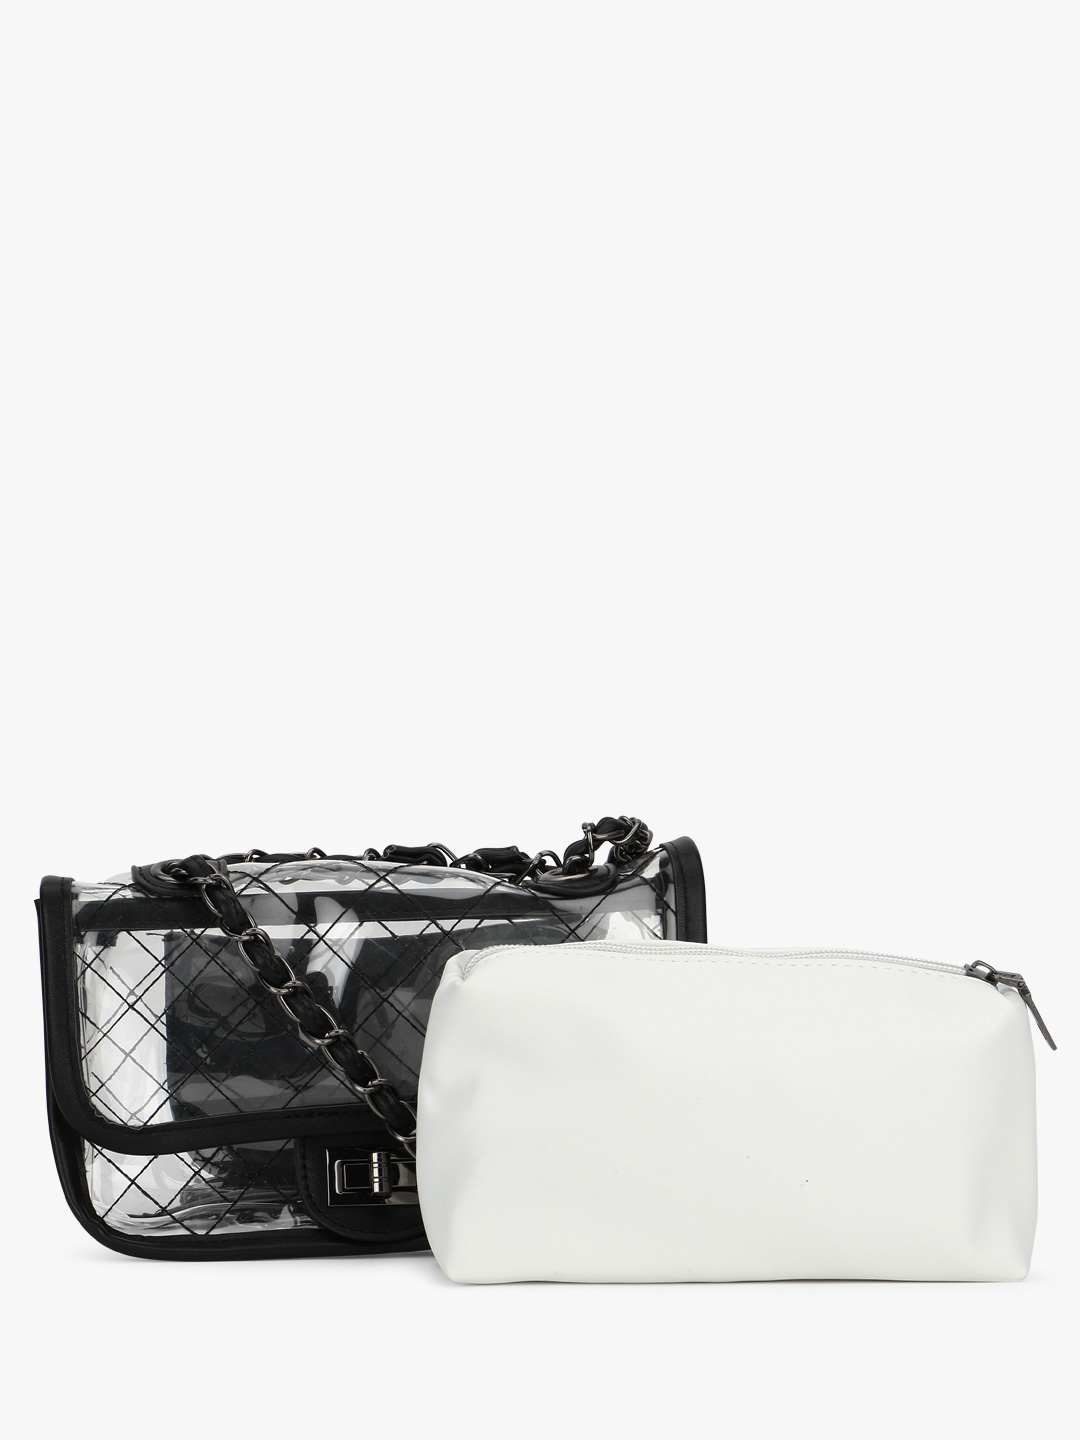 Origami Lily Black/White Clear Monochrome Sling Bag 1